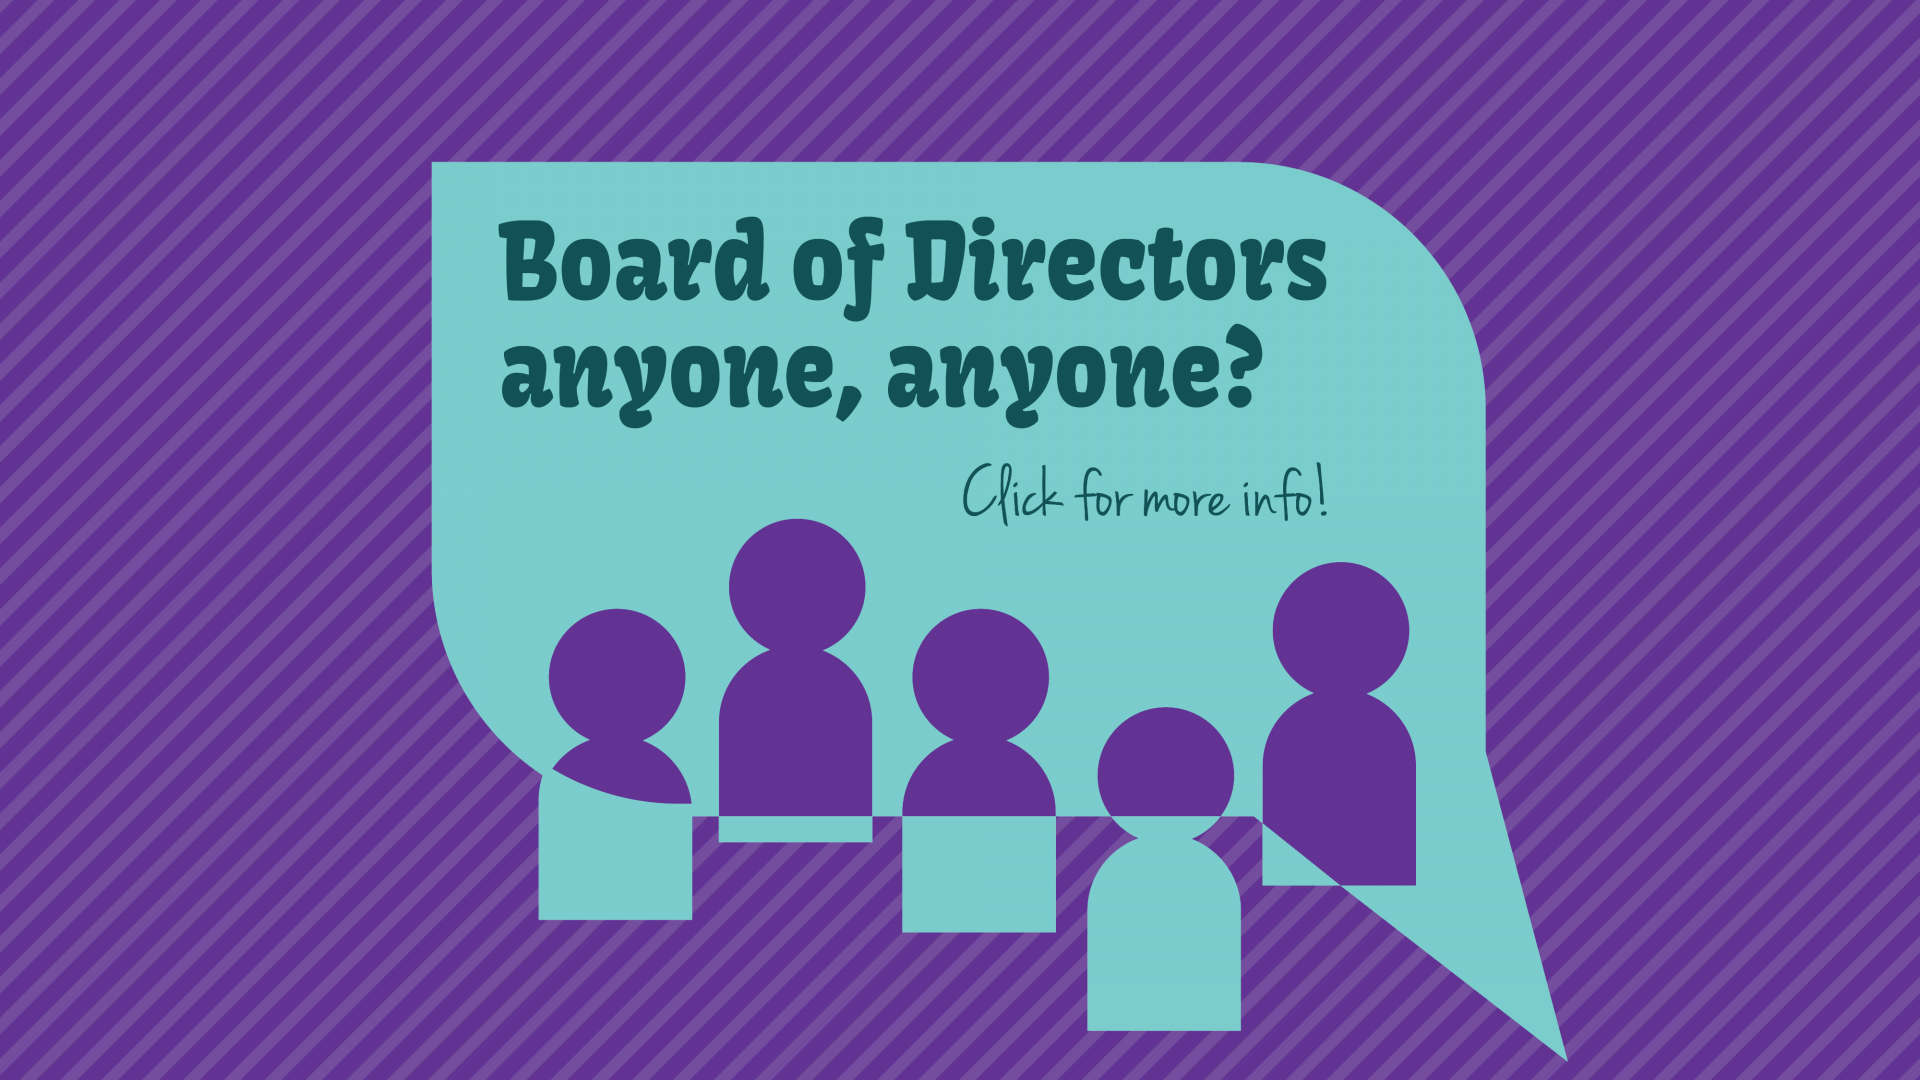 Talk Bubble Graphic - Asking to join our Board of Directors - click for more info.